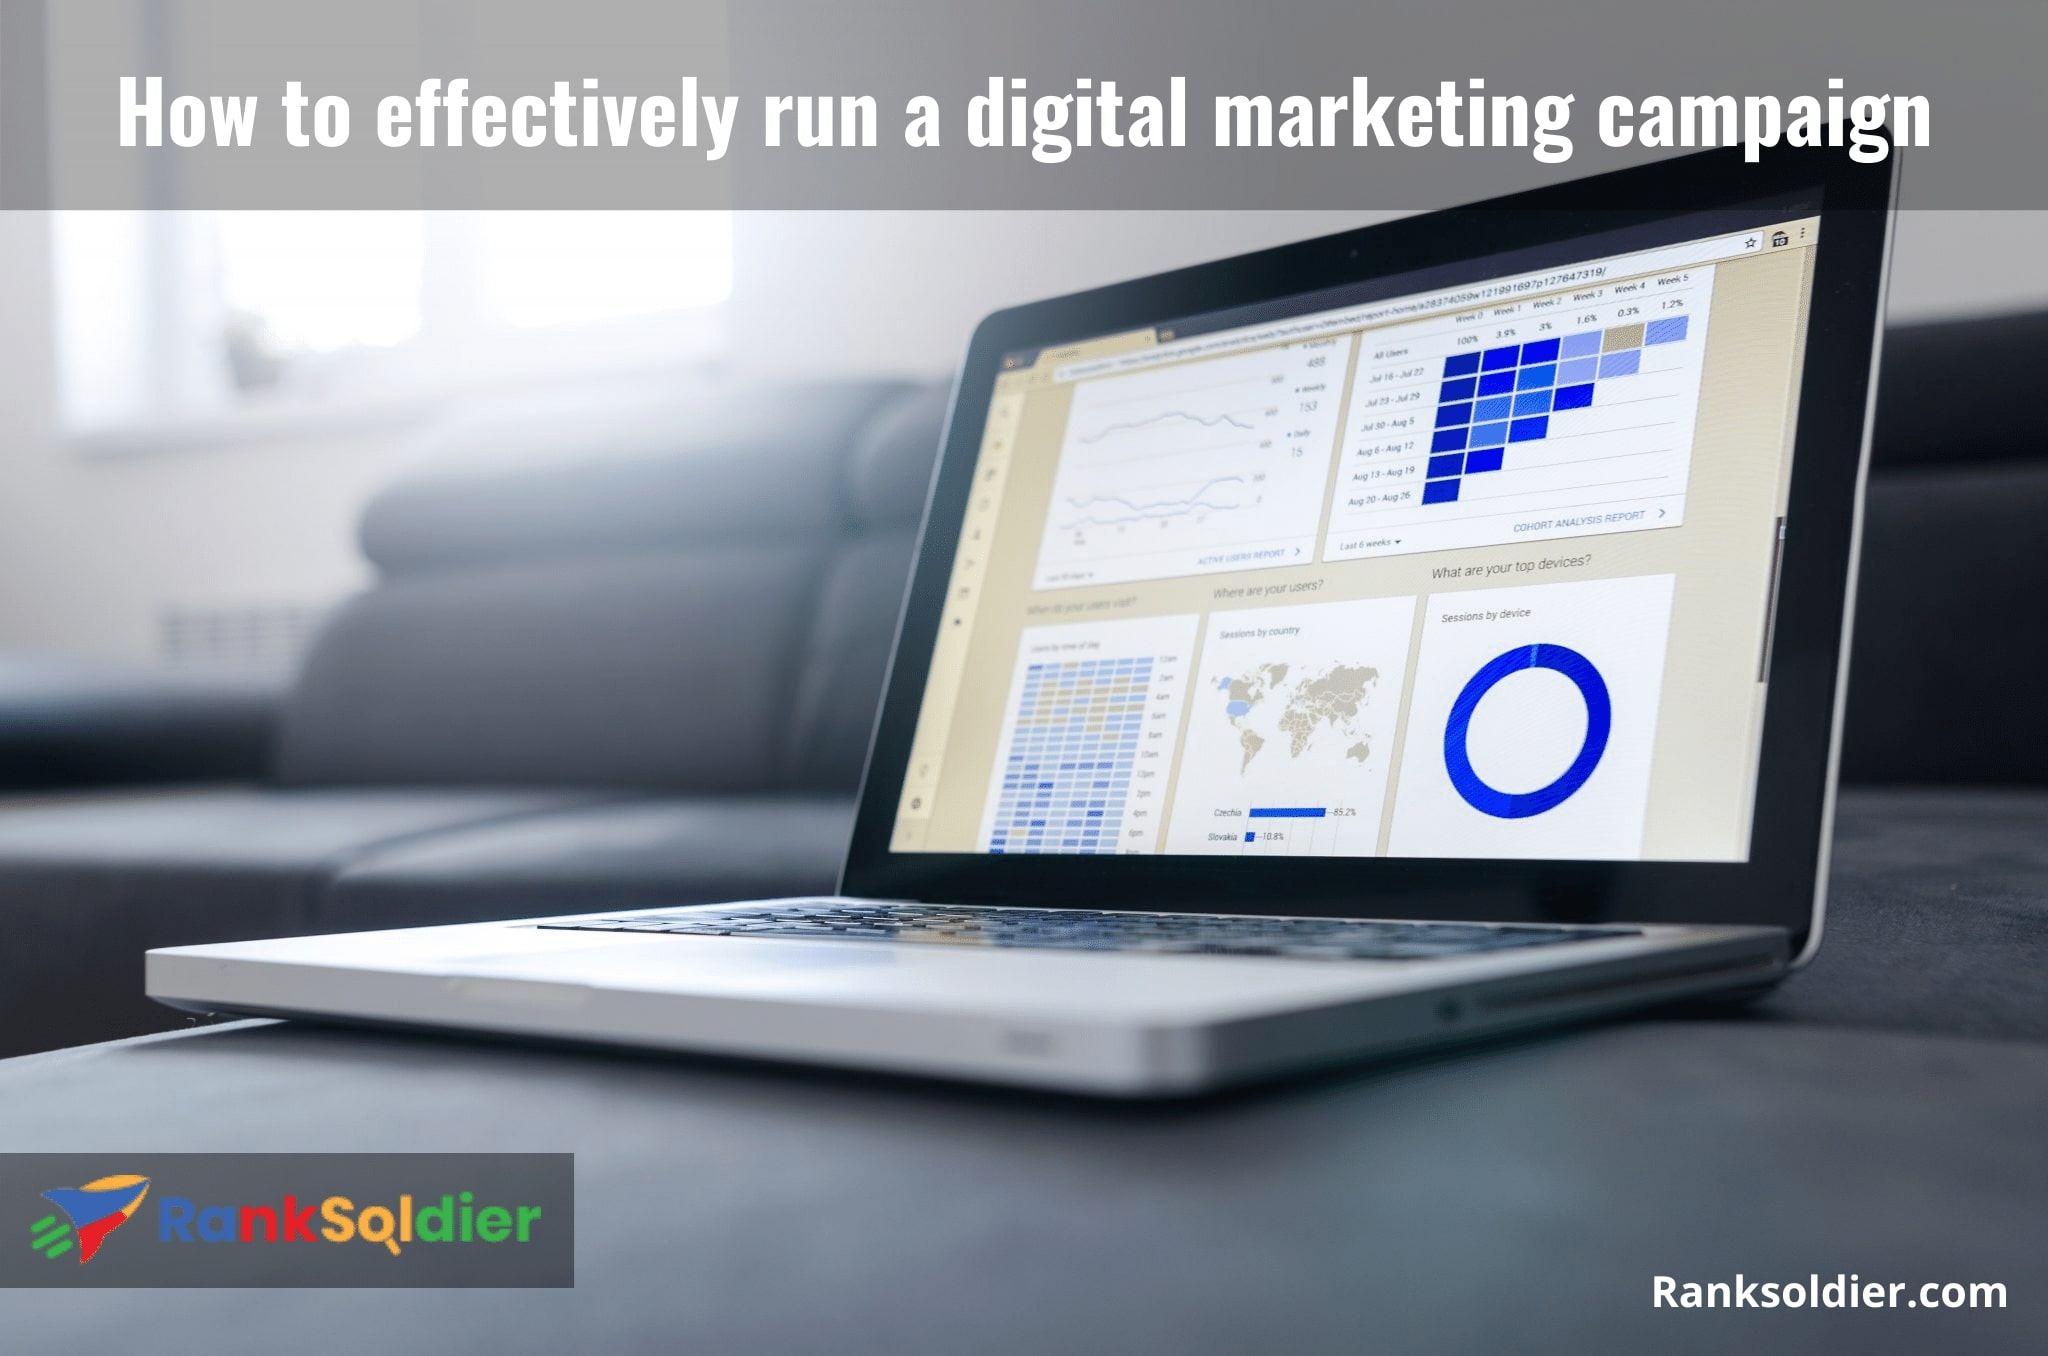 How to effectively run a digital marketing campaign